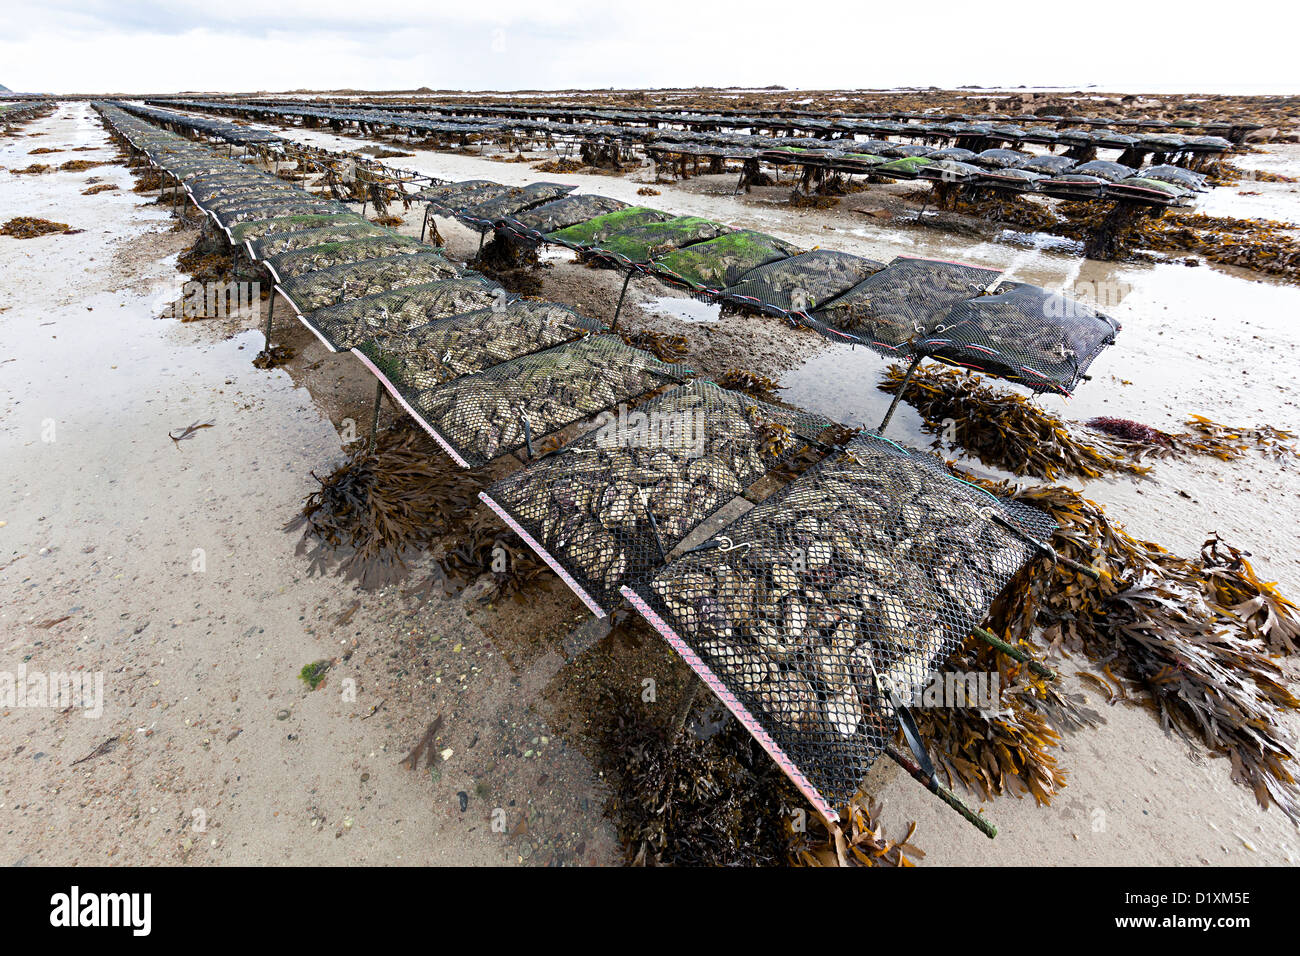 Oyster farming at low tide near Seymour Tower, Jersey, Channel Islands, UK Stock Photo